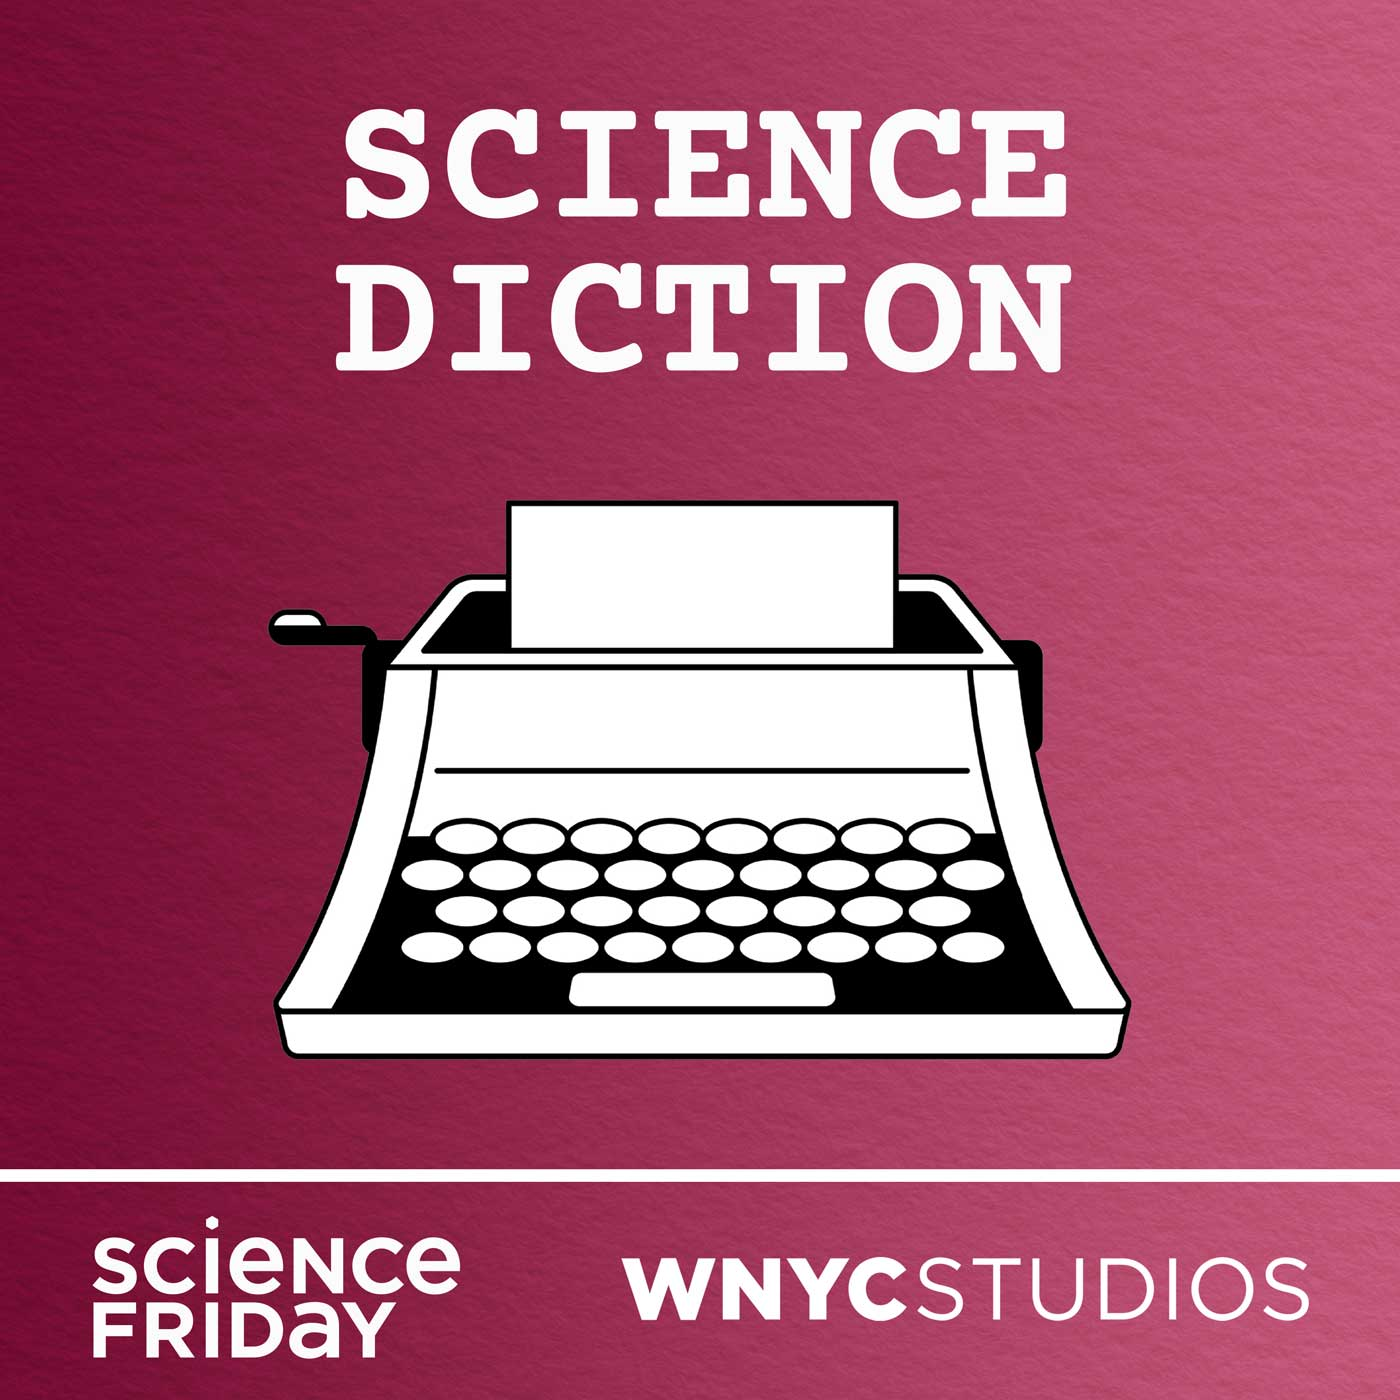 album artwork that says 'science diction', has a graphic of a typewriter, and says 'science friday and wnyc studios' at the bottom